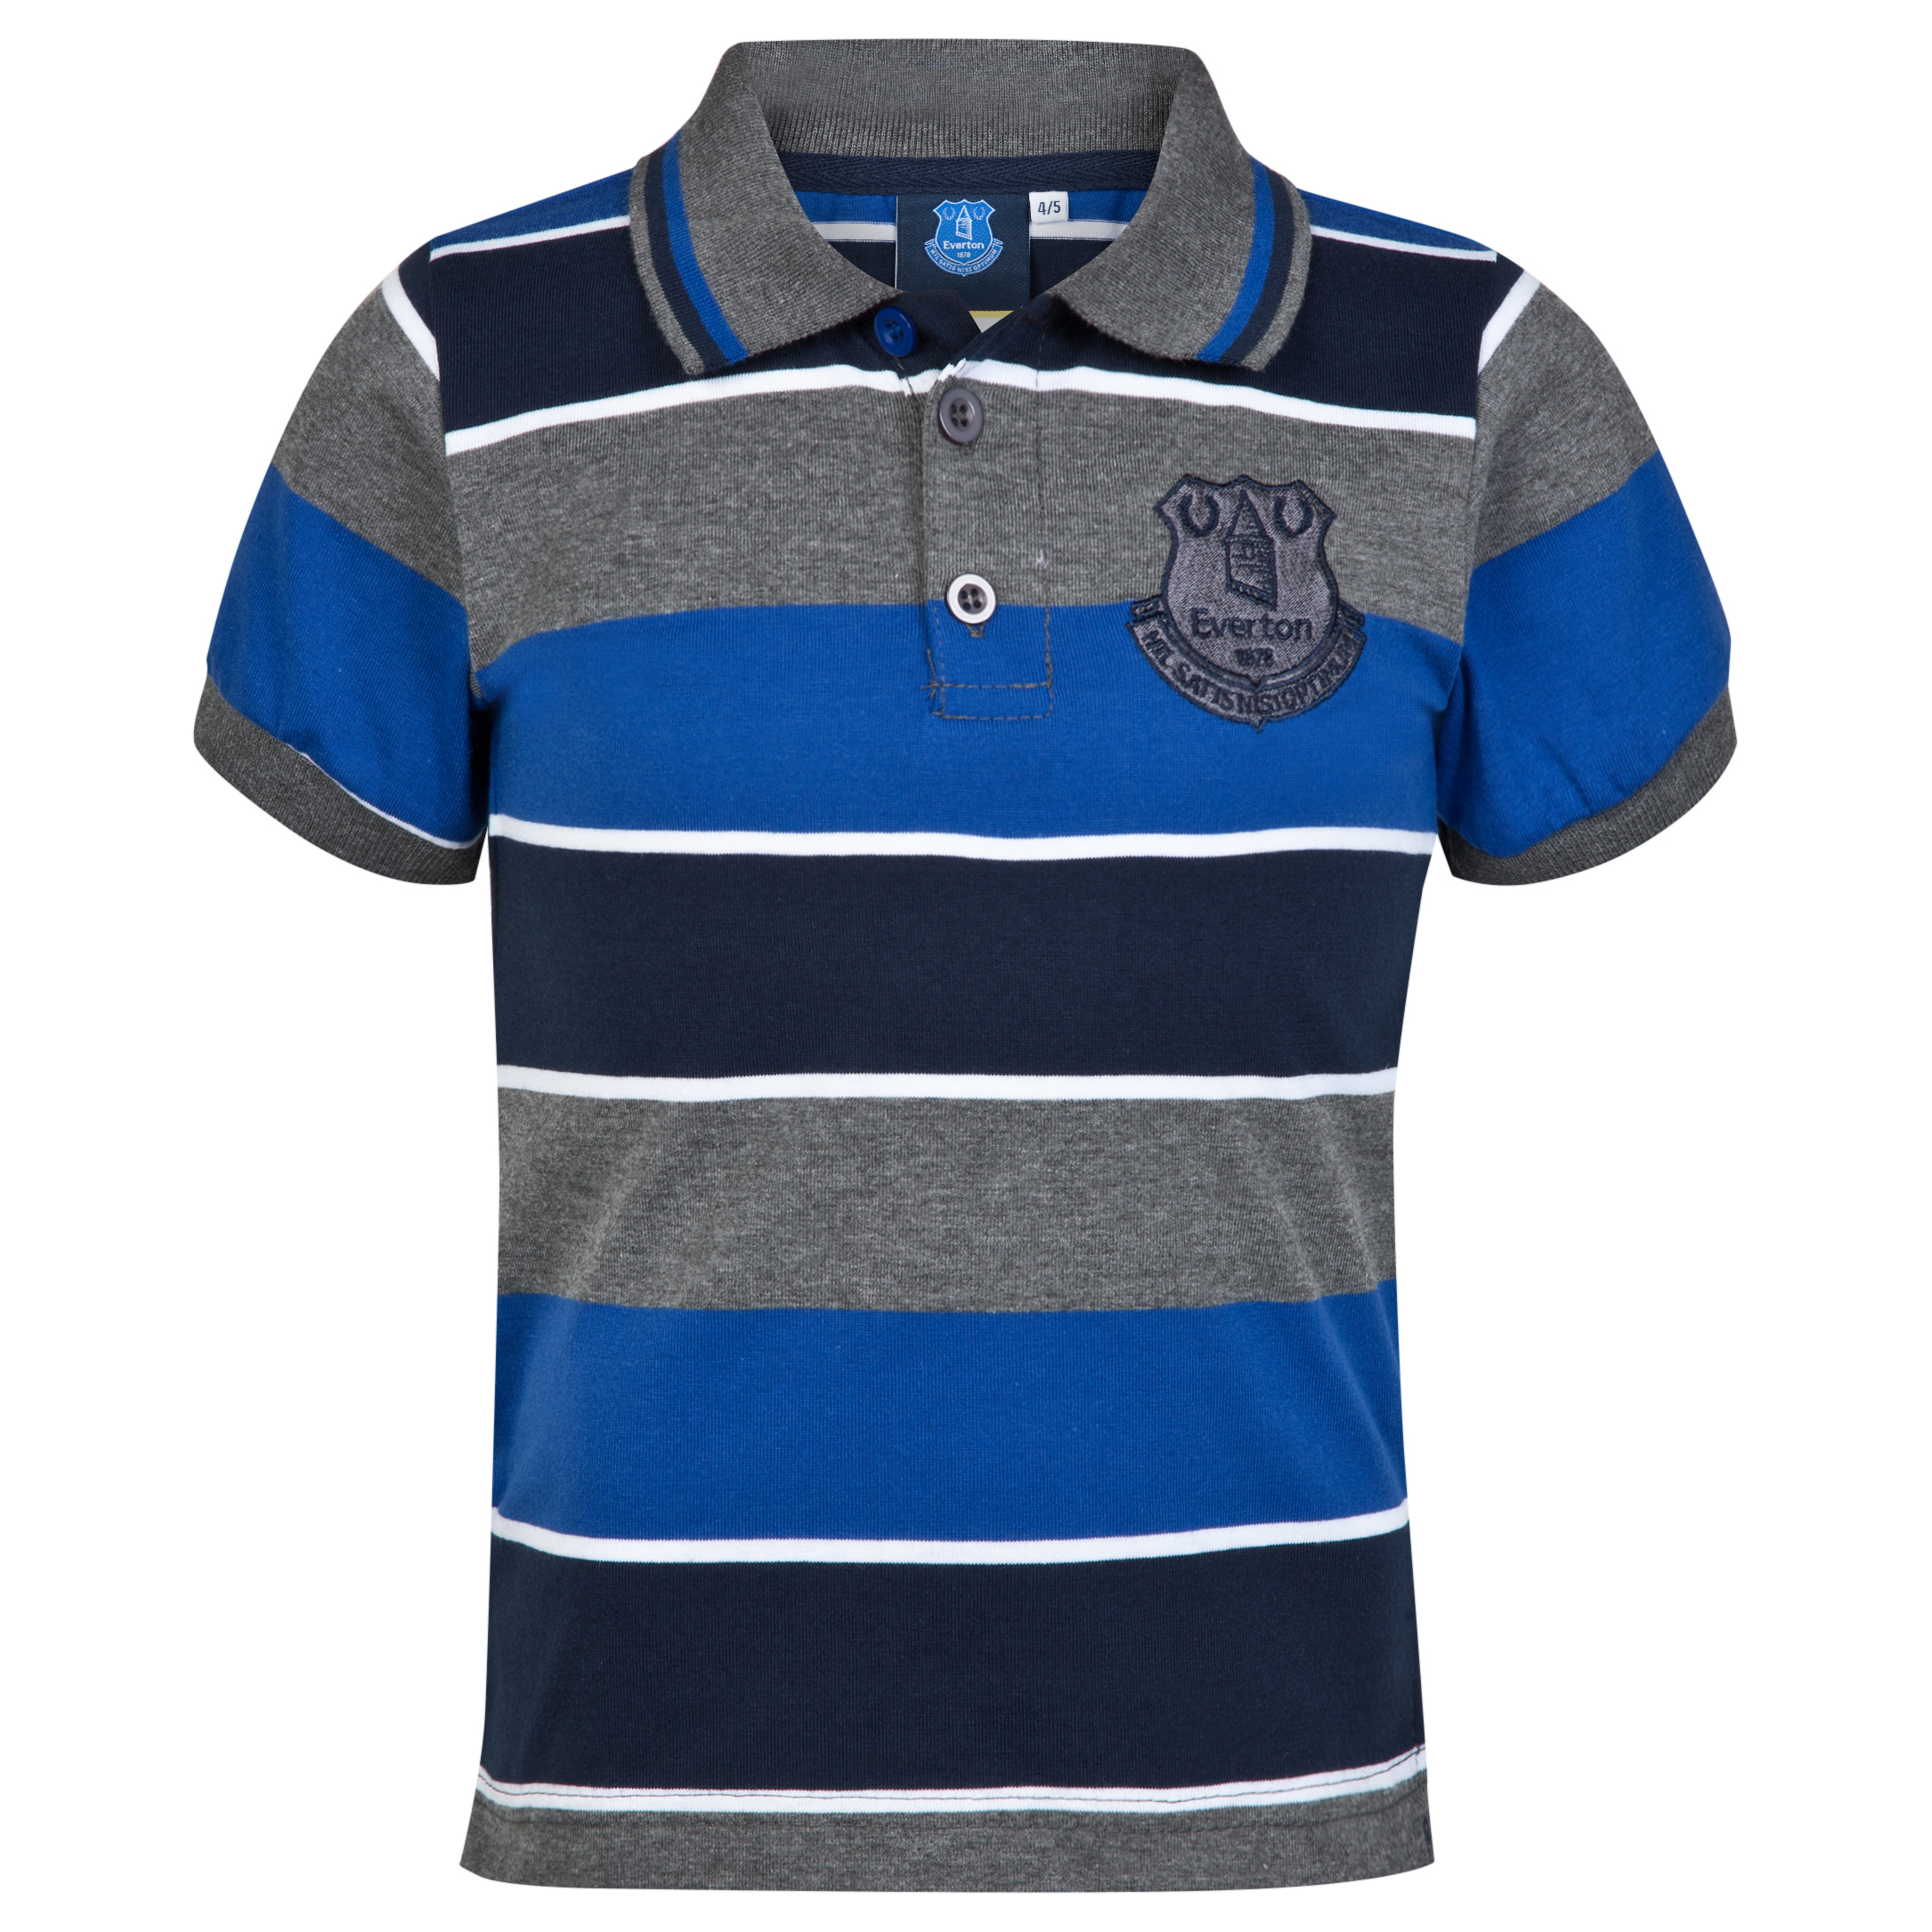 Everton Essential Stripe Polo Shirt - Vintage Marl/Navy/Everton Blue - Infant Boys